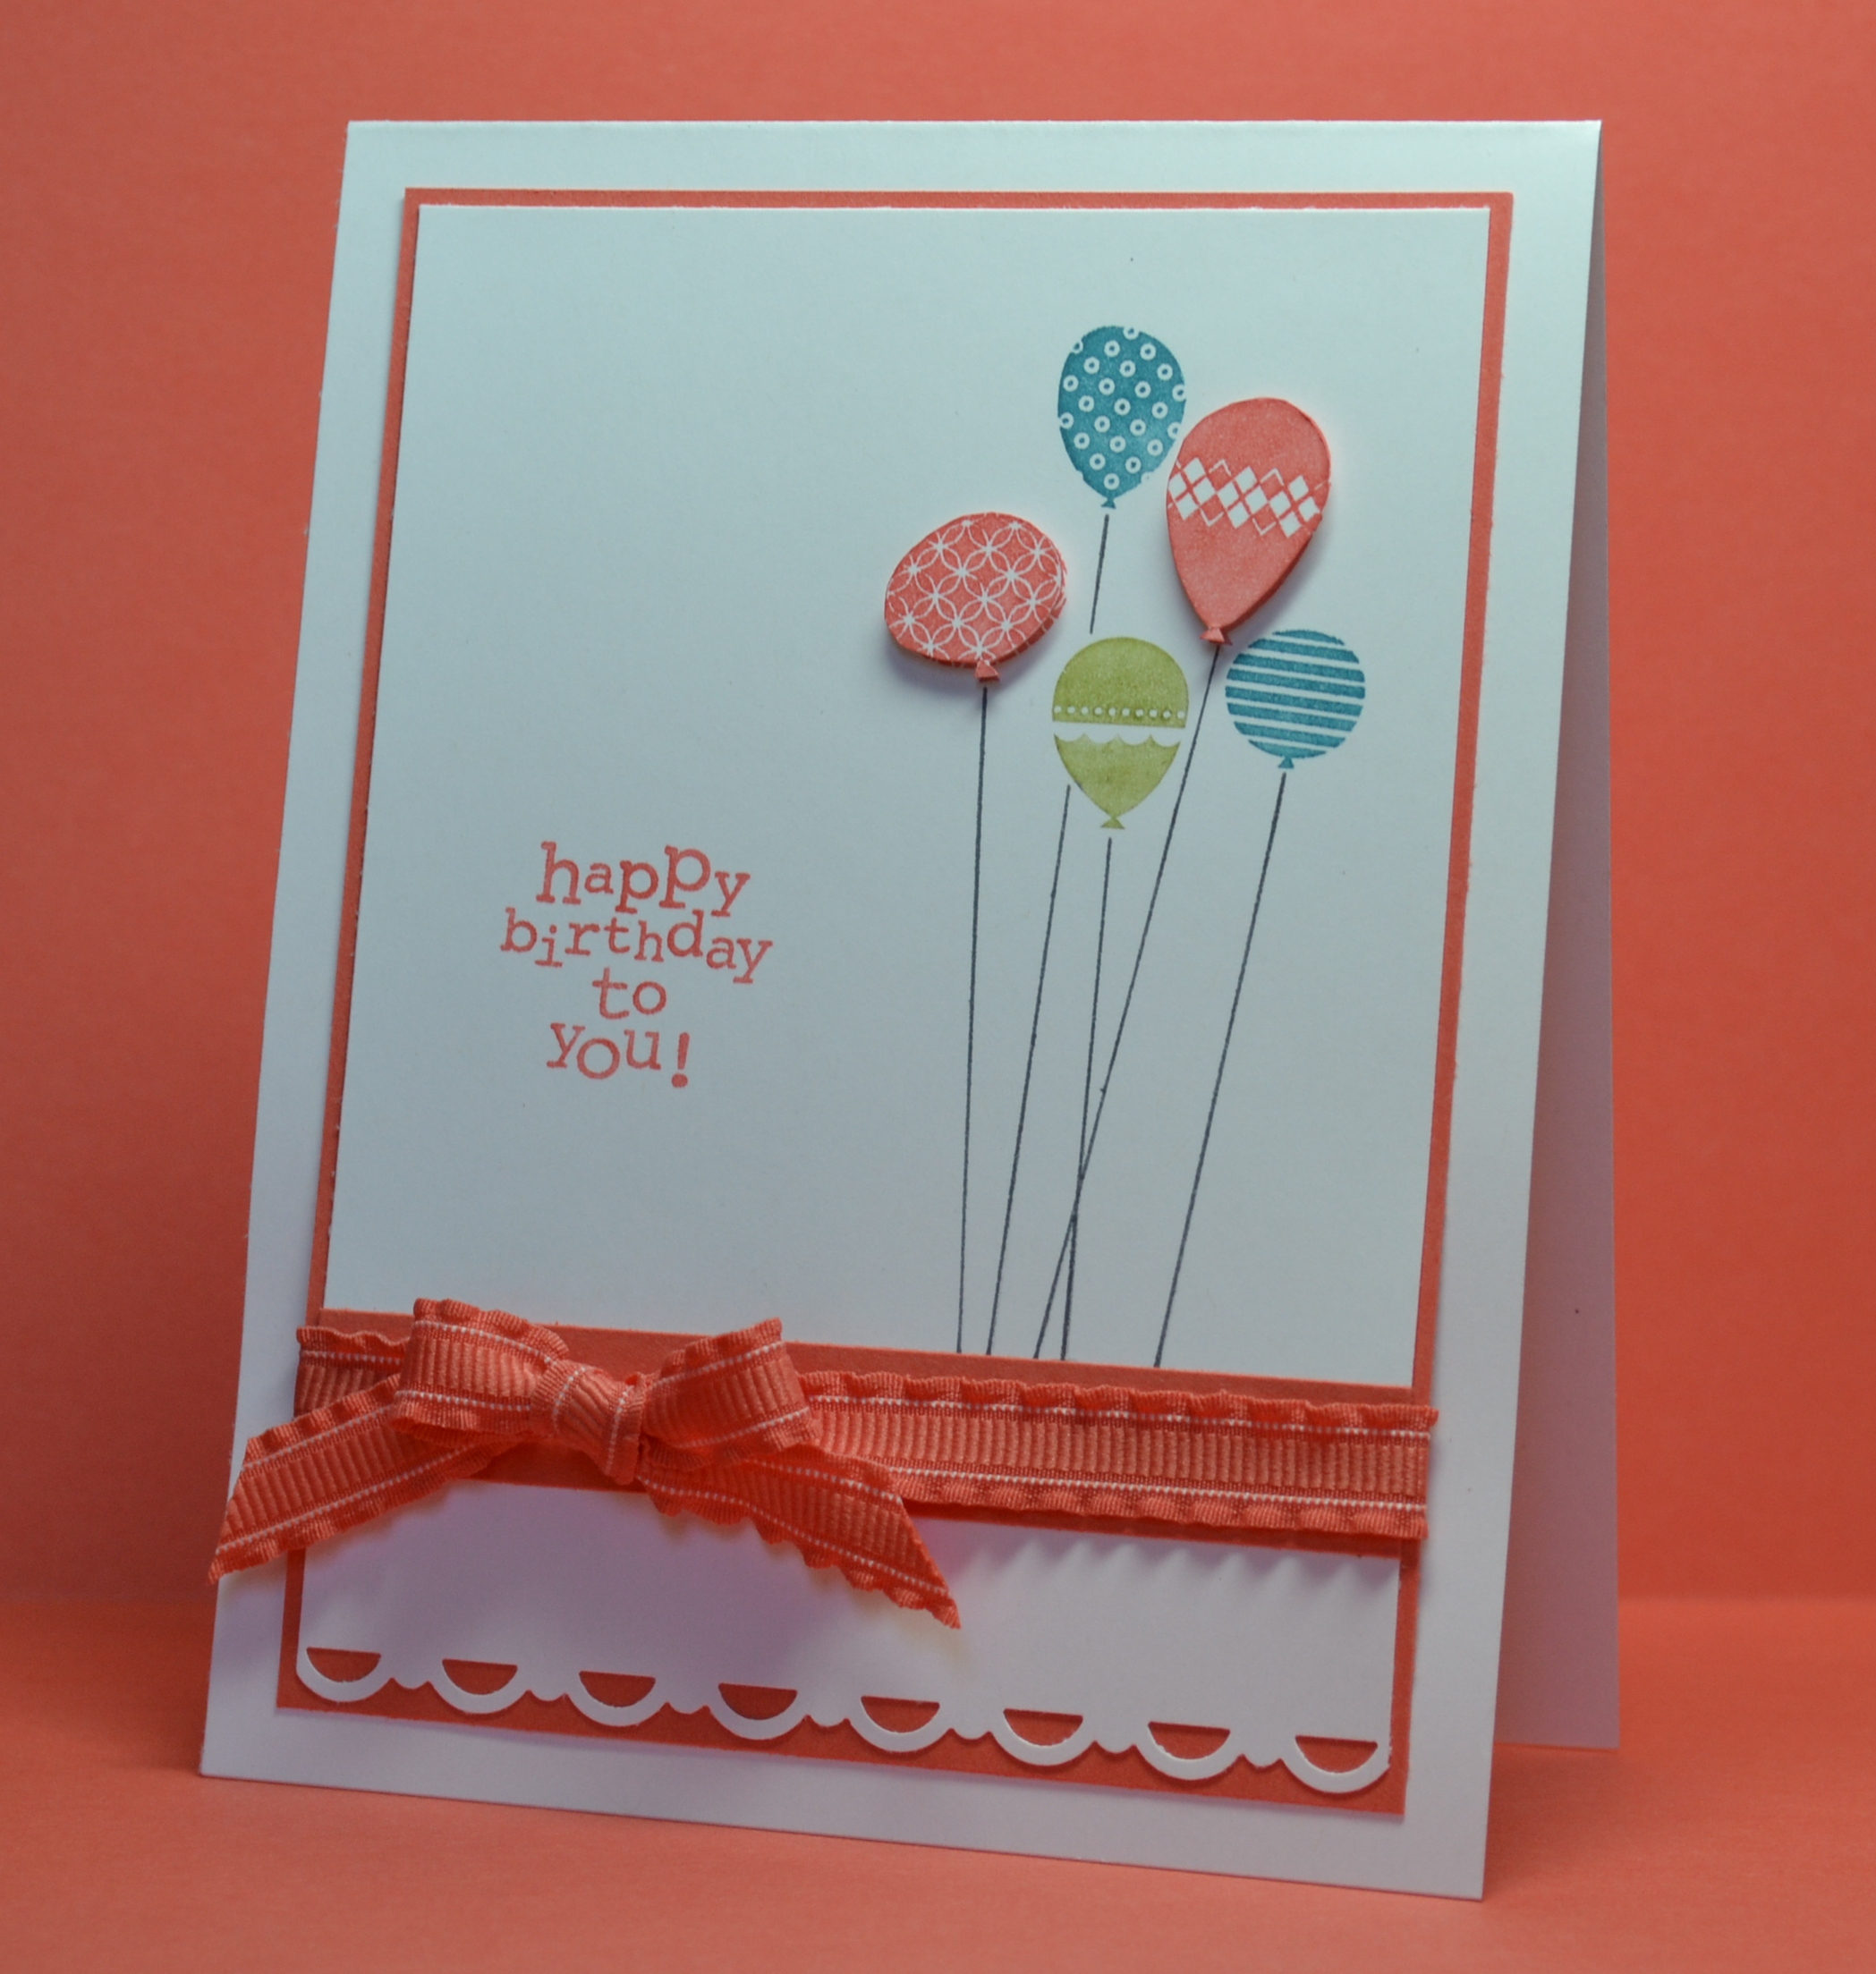 Celebrating the kids – How to Make a Birthday Card for Kids